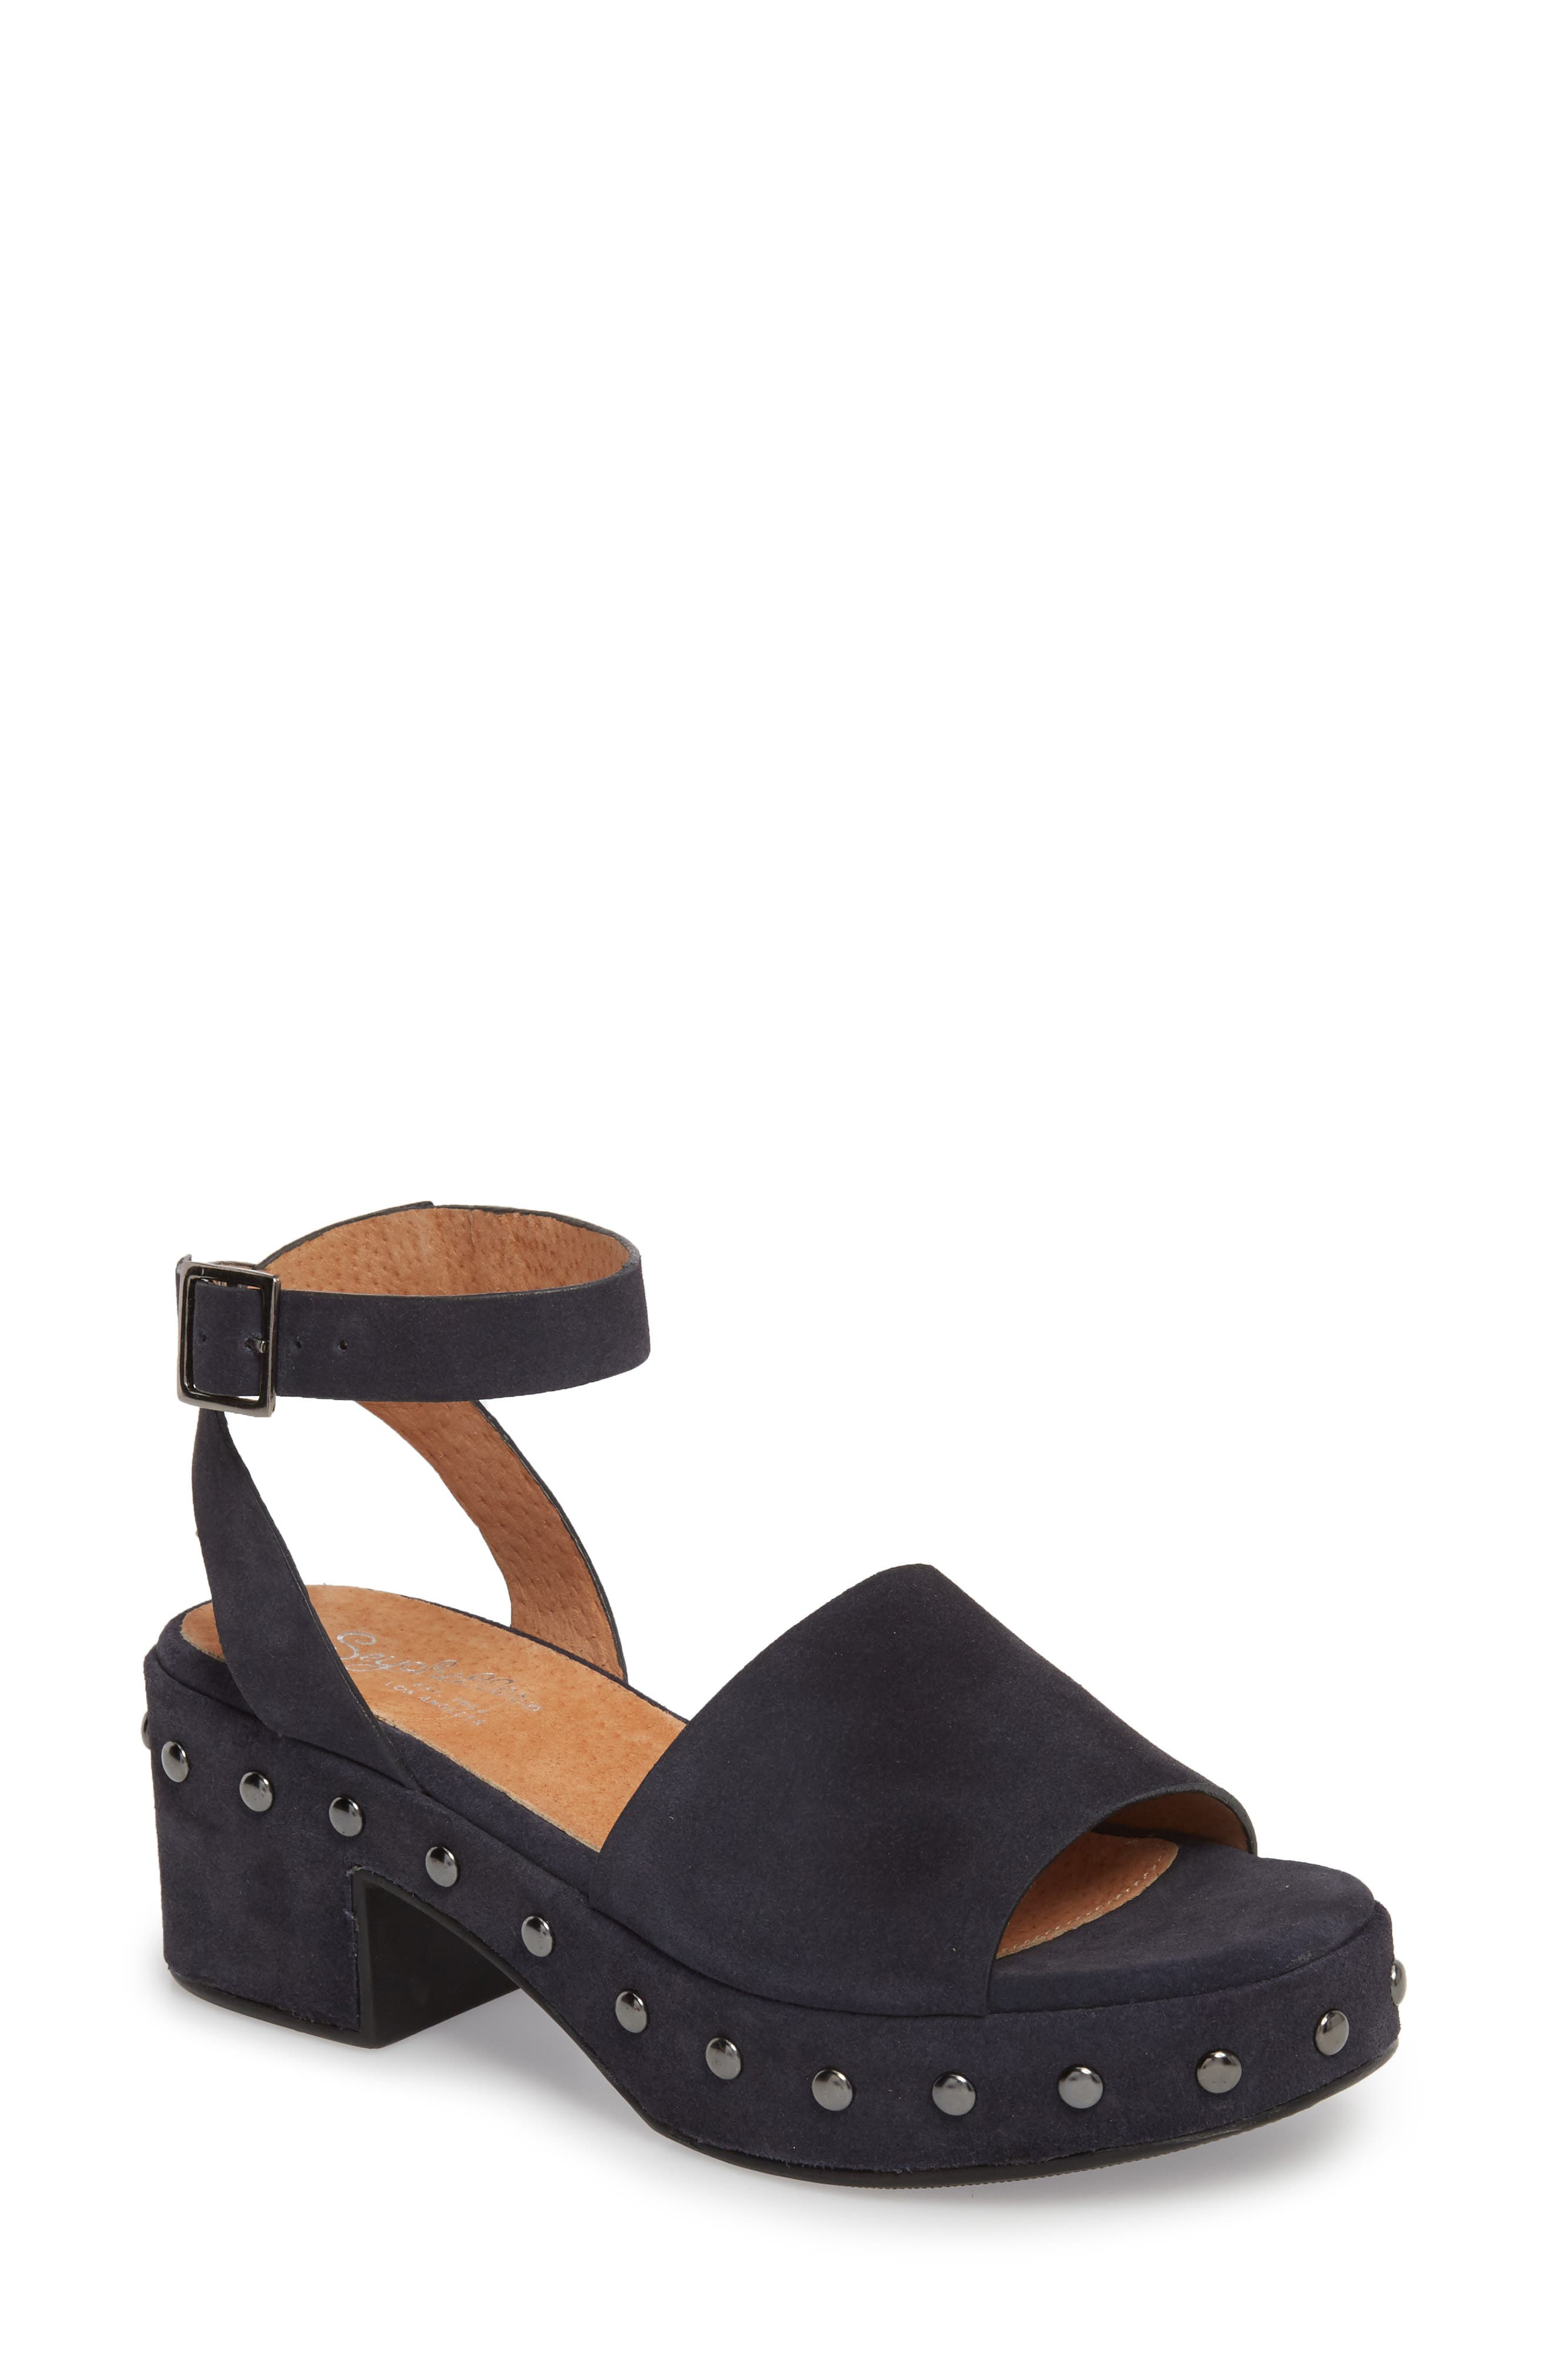 Spare Moments Sandal,                         Main,                         color, NAVY SUEDE